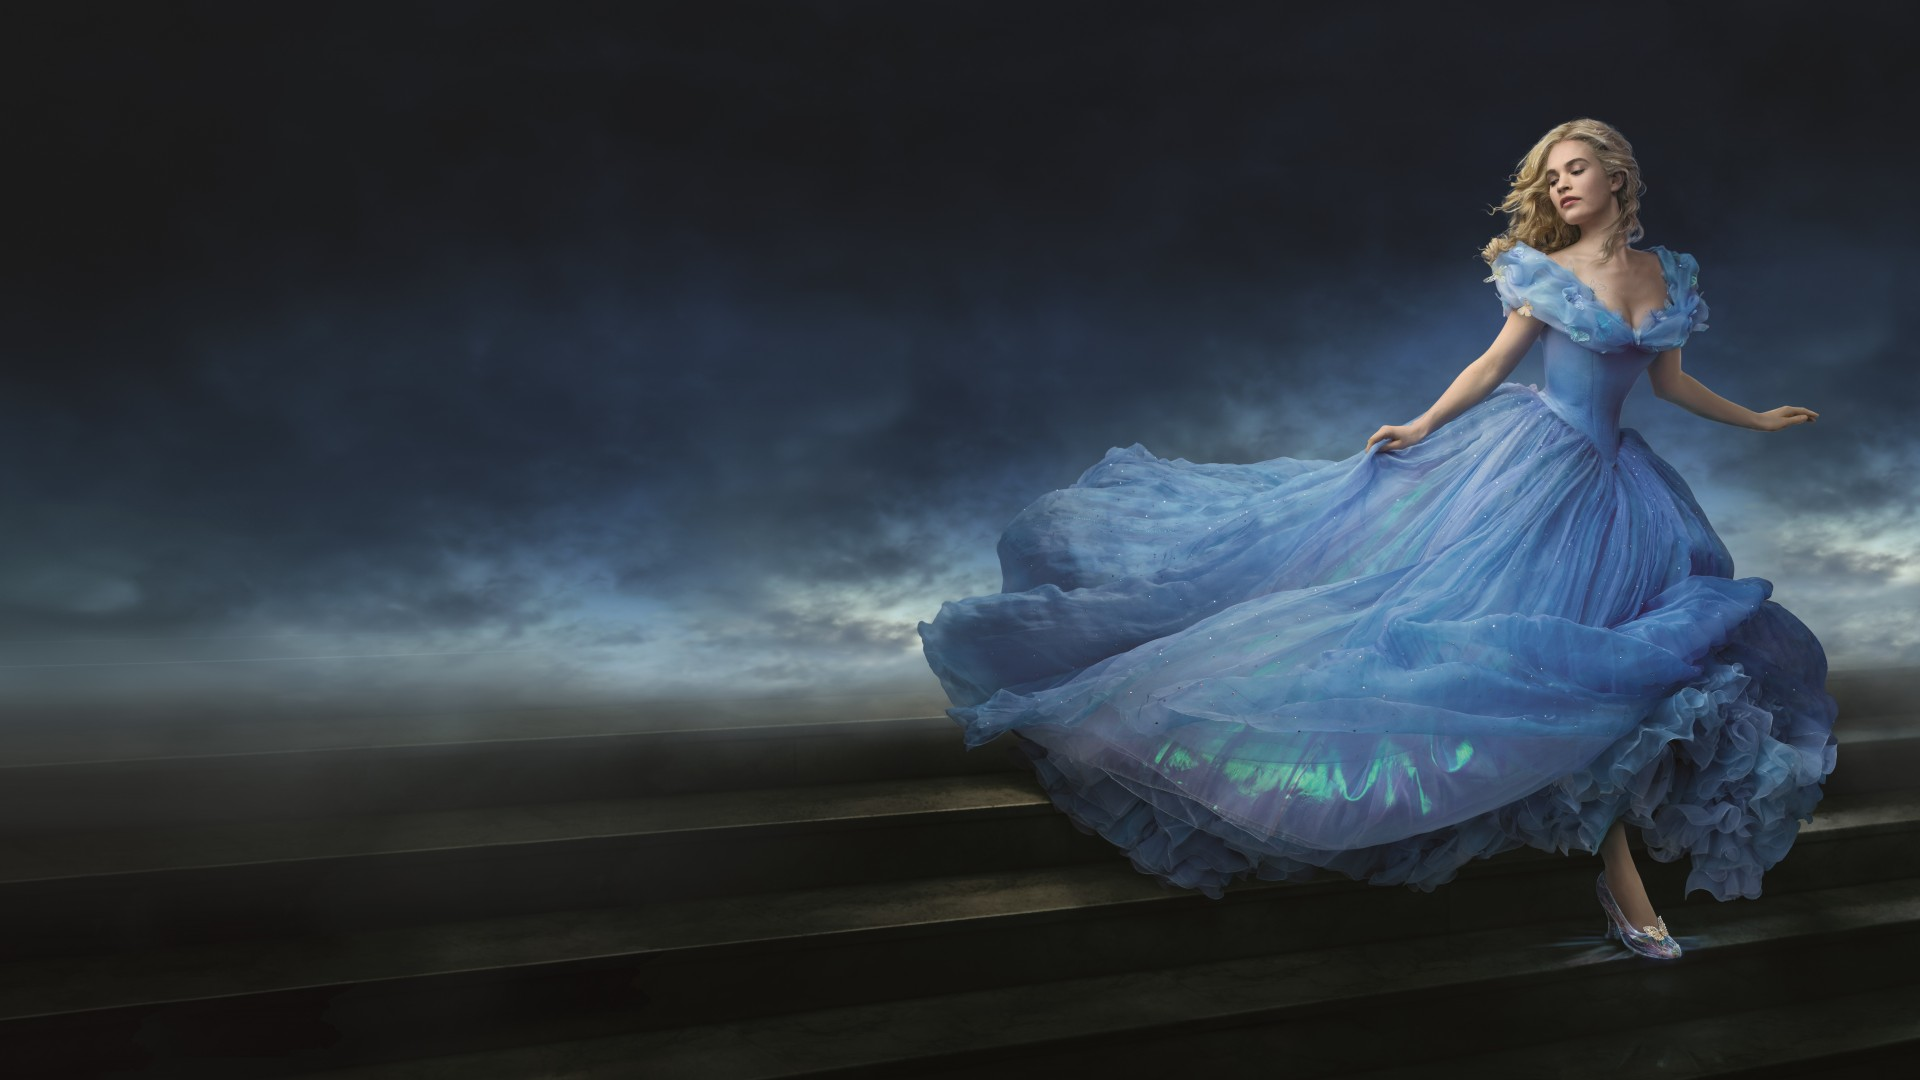 Cinderella, 2015, movie, film, romantic, blue dress, blonde, fog, Lily James, Ella, Richard Madden, Prince Charming, Helena Bonham Carter, The Fairy Godmother (horizontal)